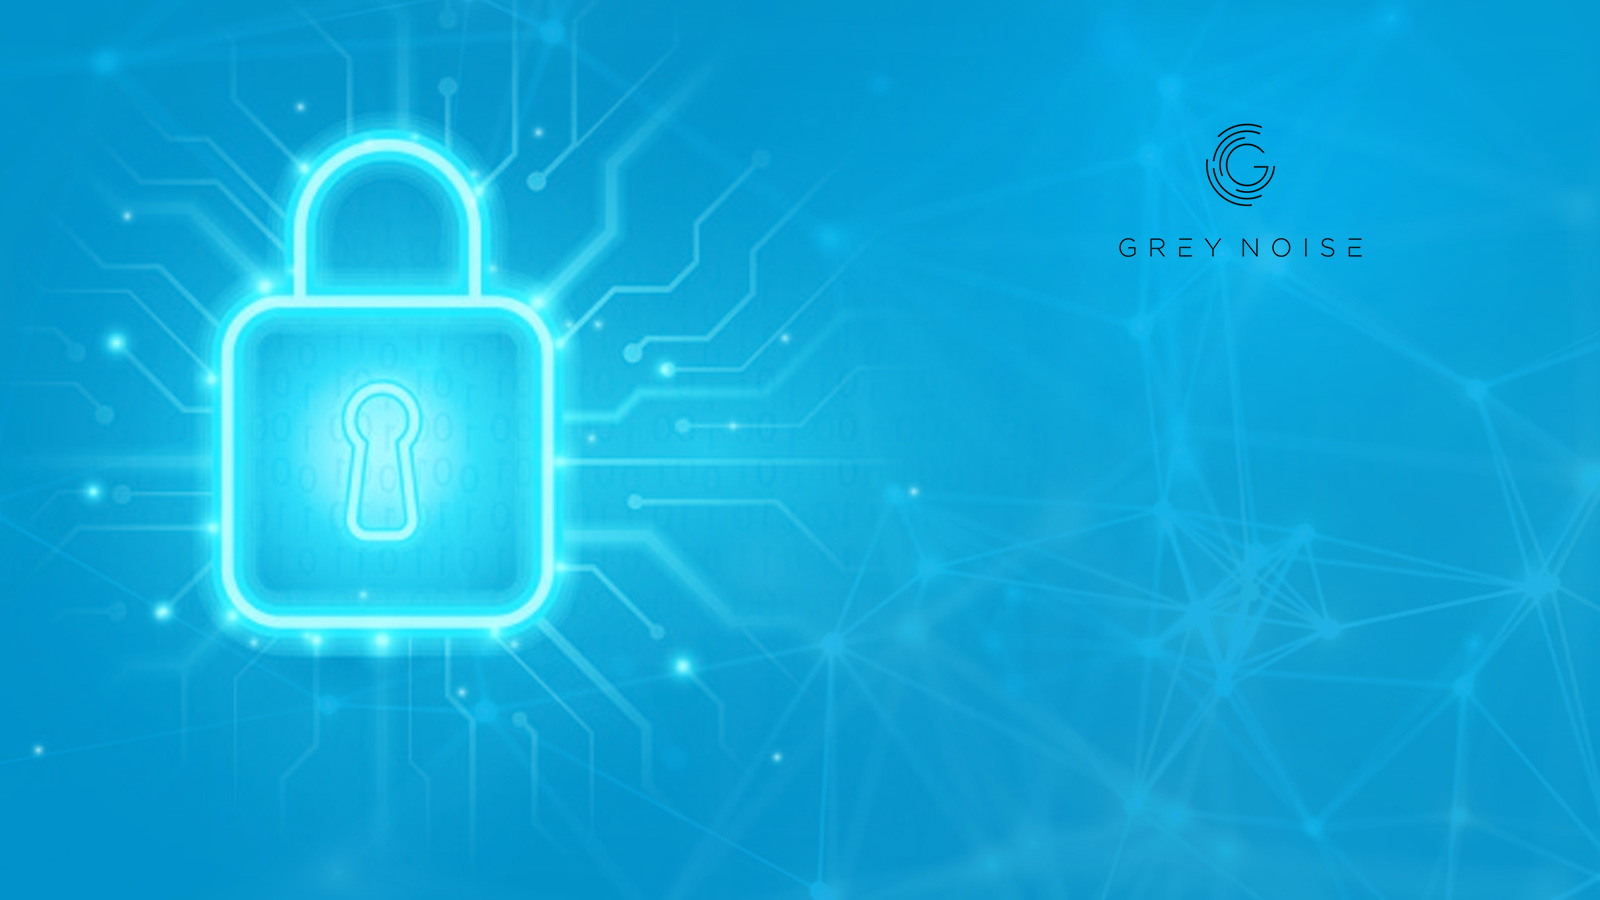 Cybersecurity Startup GreyNoise Secures Seed Funding to